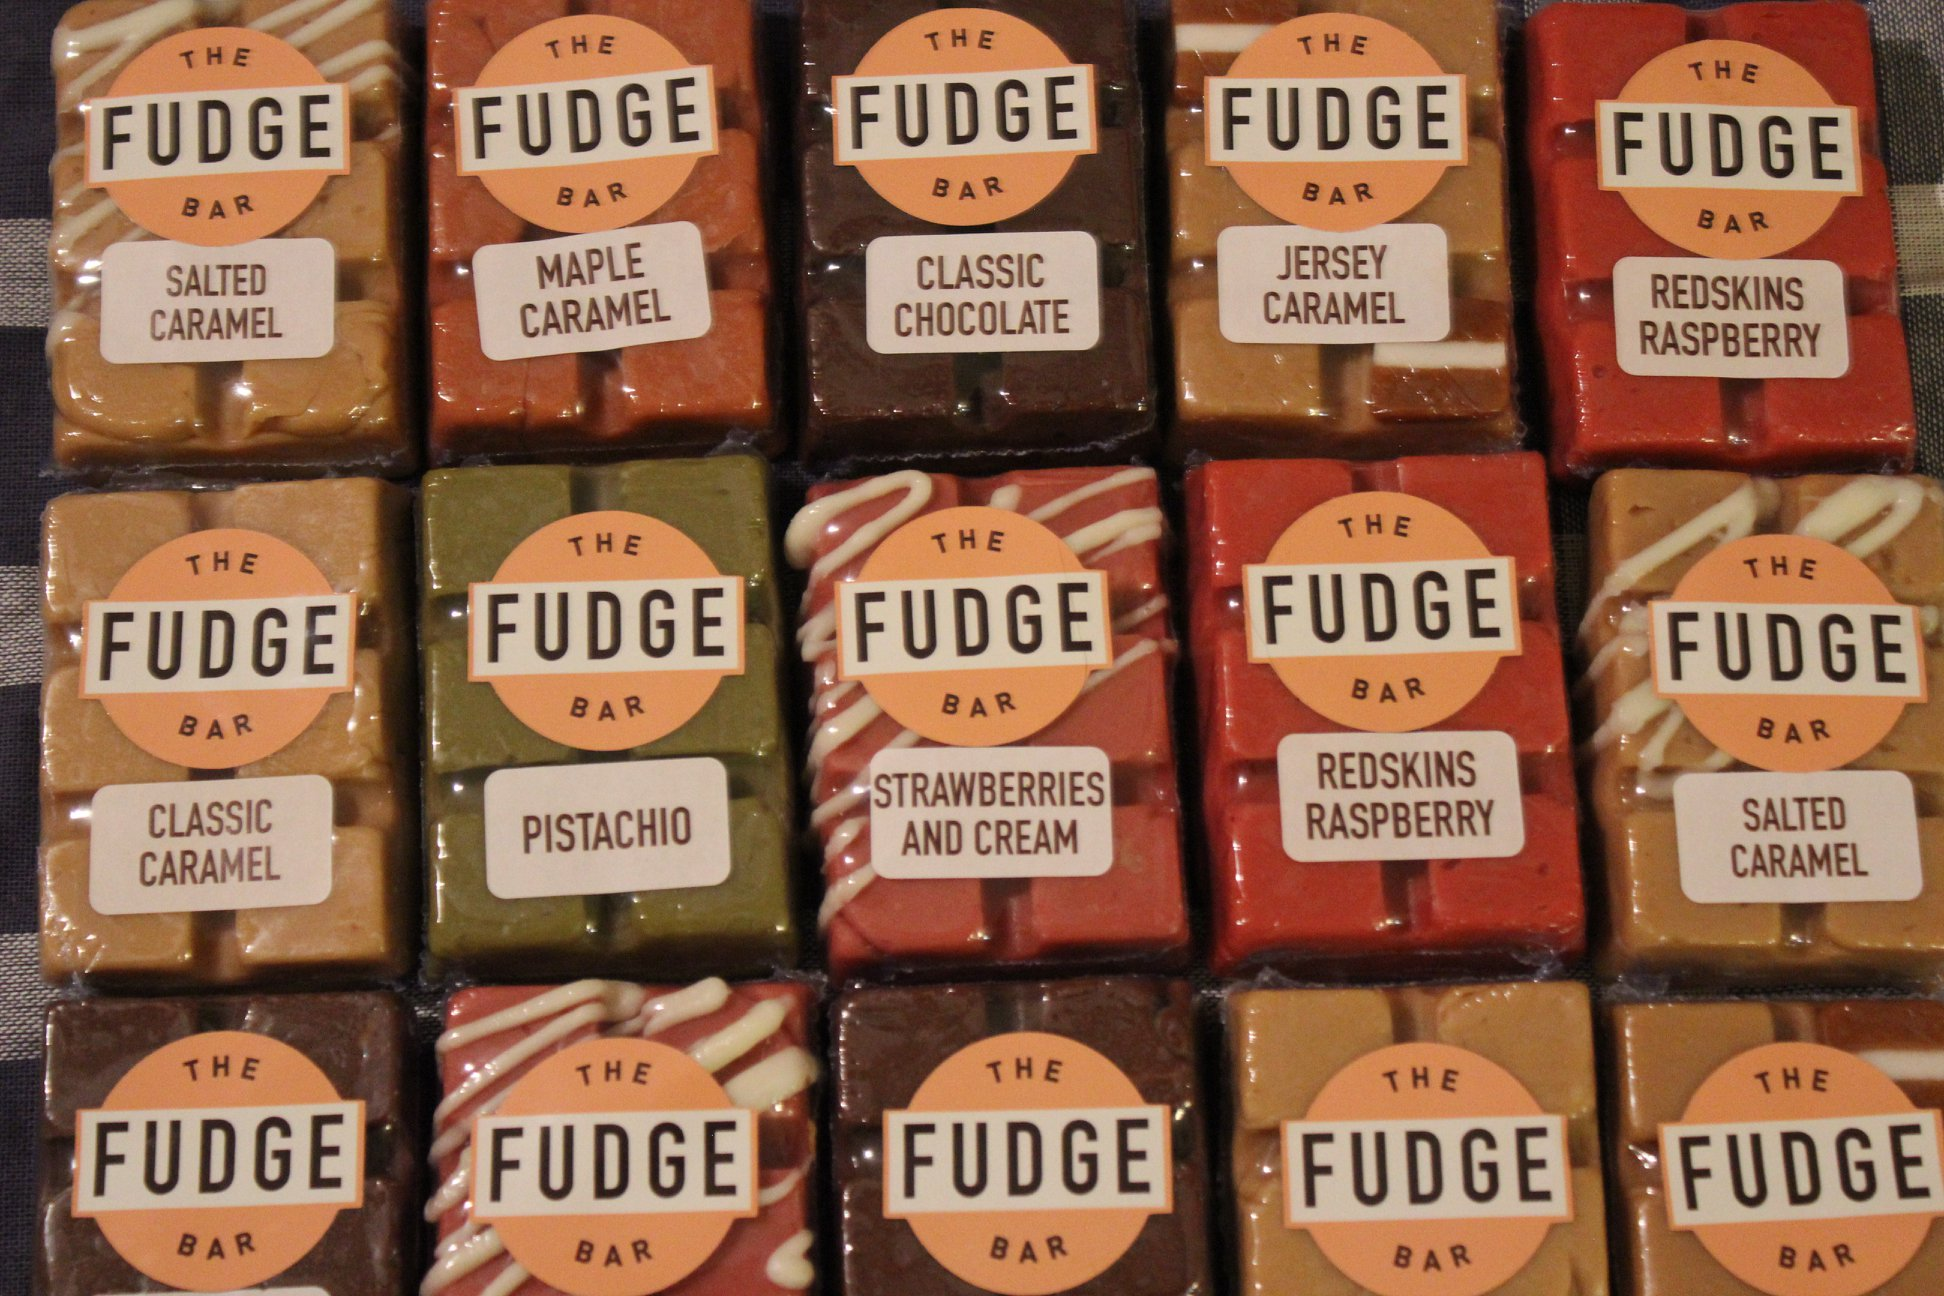 The Fudge Bar